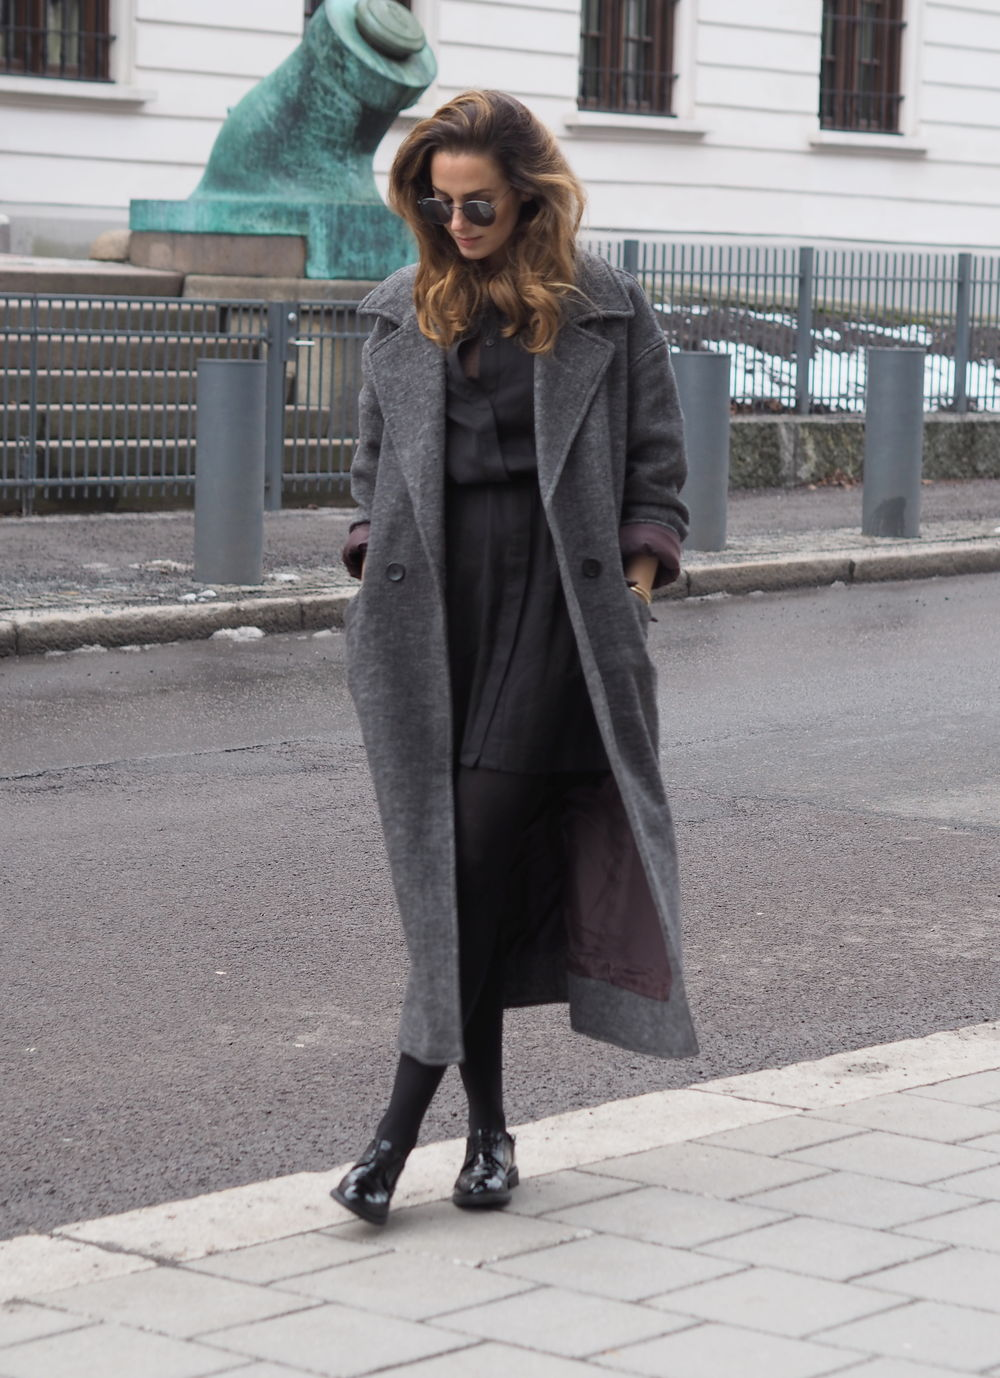 This bulky grey maxi coat goes perfectly with Benedichte's sleek and stylish monochrome outfit. In a shirt dress and patent brogues, she is rocking a more androgynous style! Jacket/Shirt Dress: Vagabond, Shoes: Zalando.